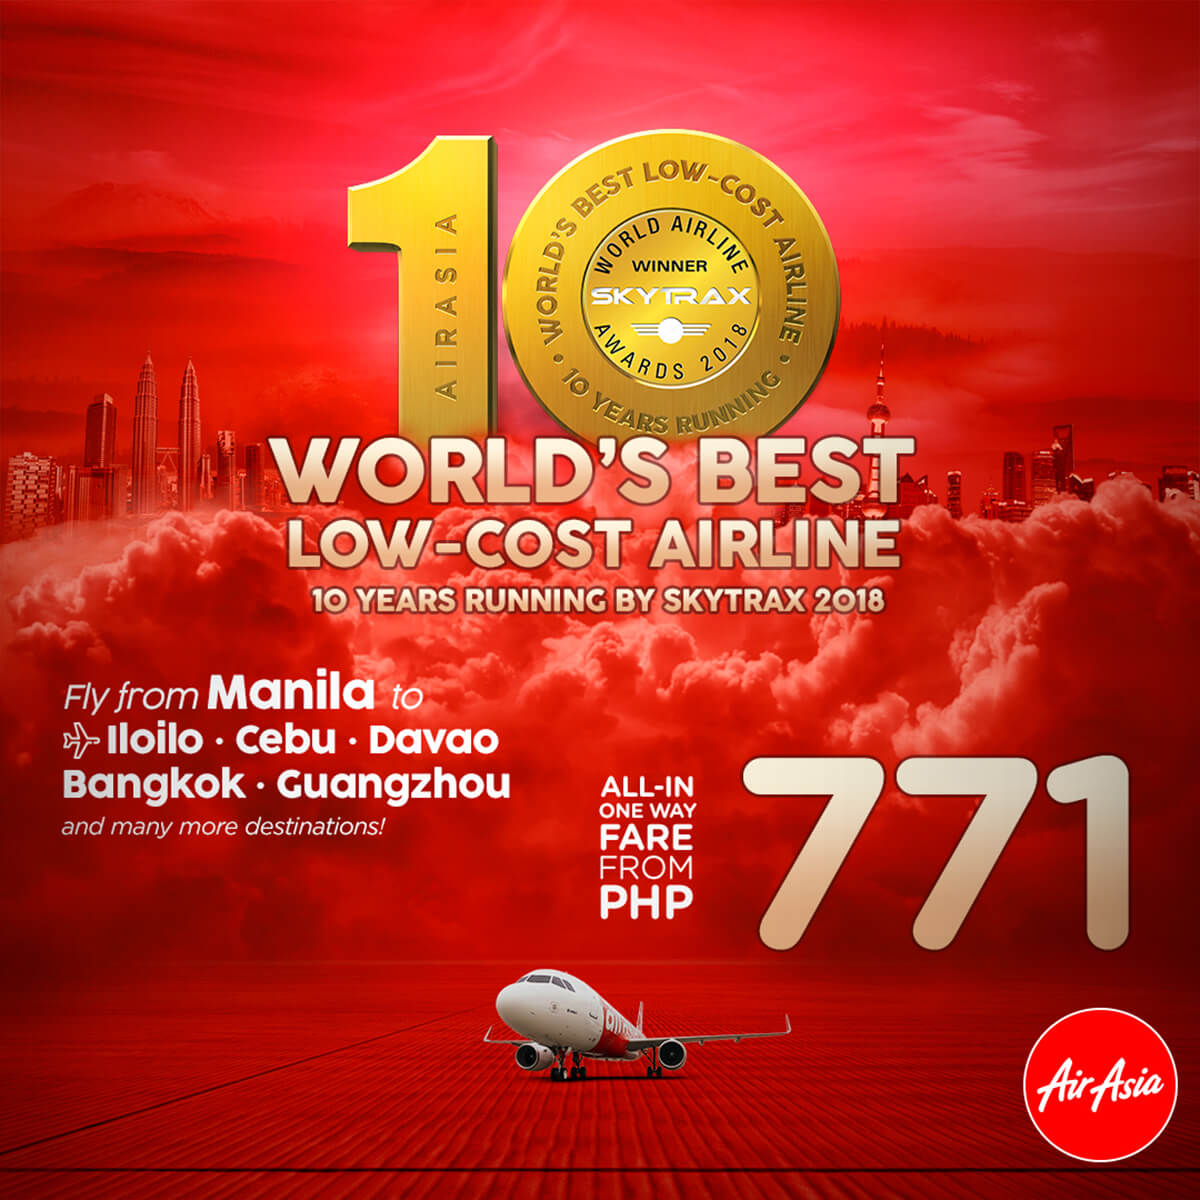 AirAsia Low Fare Promo - Word's Best Low-Cost Airline